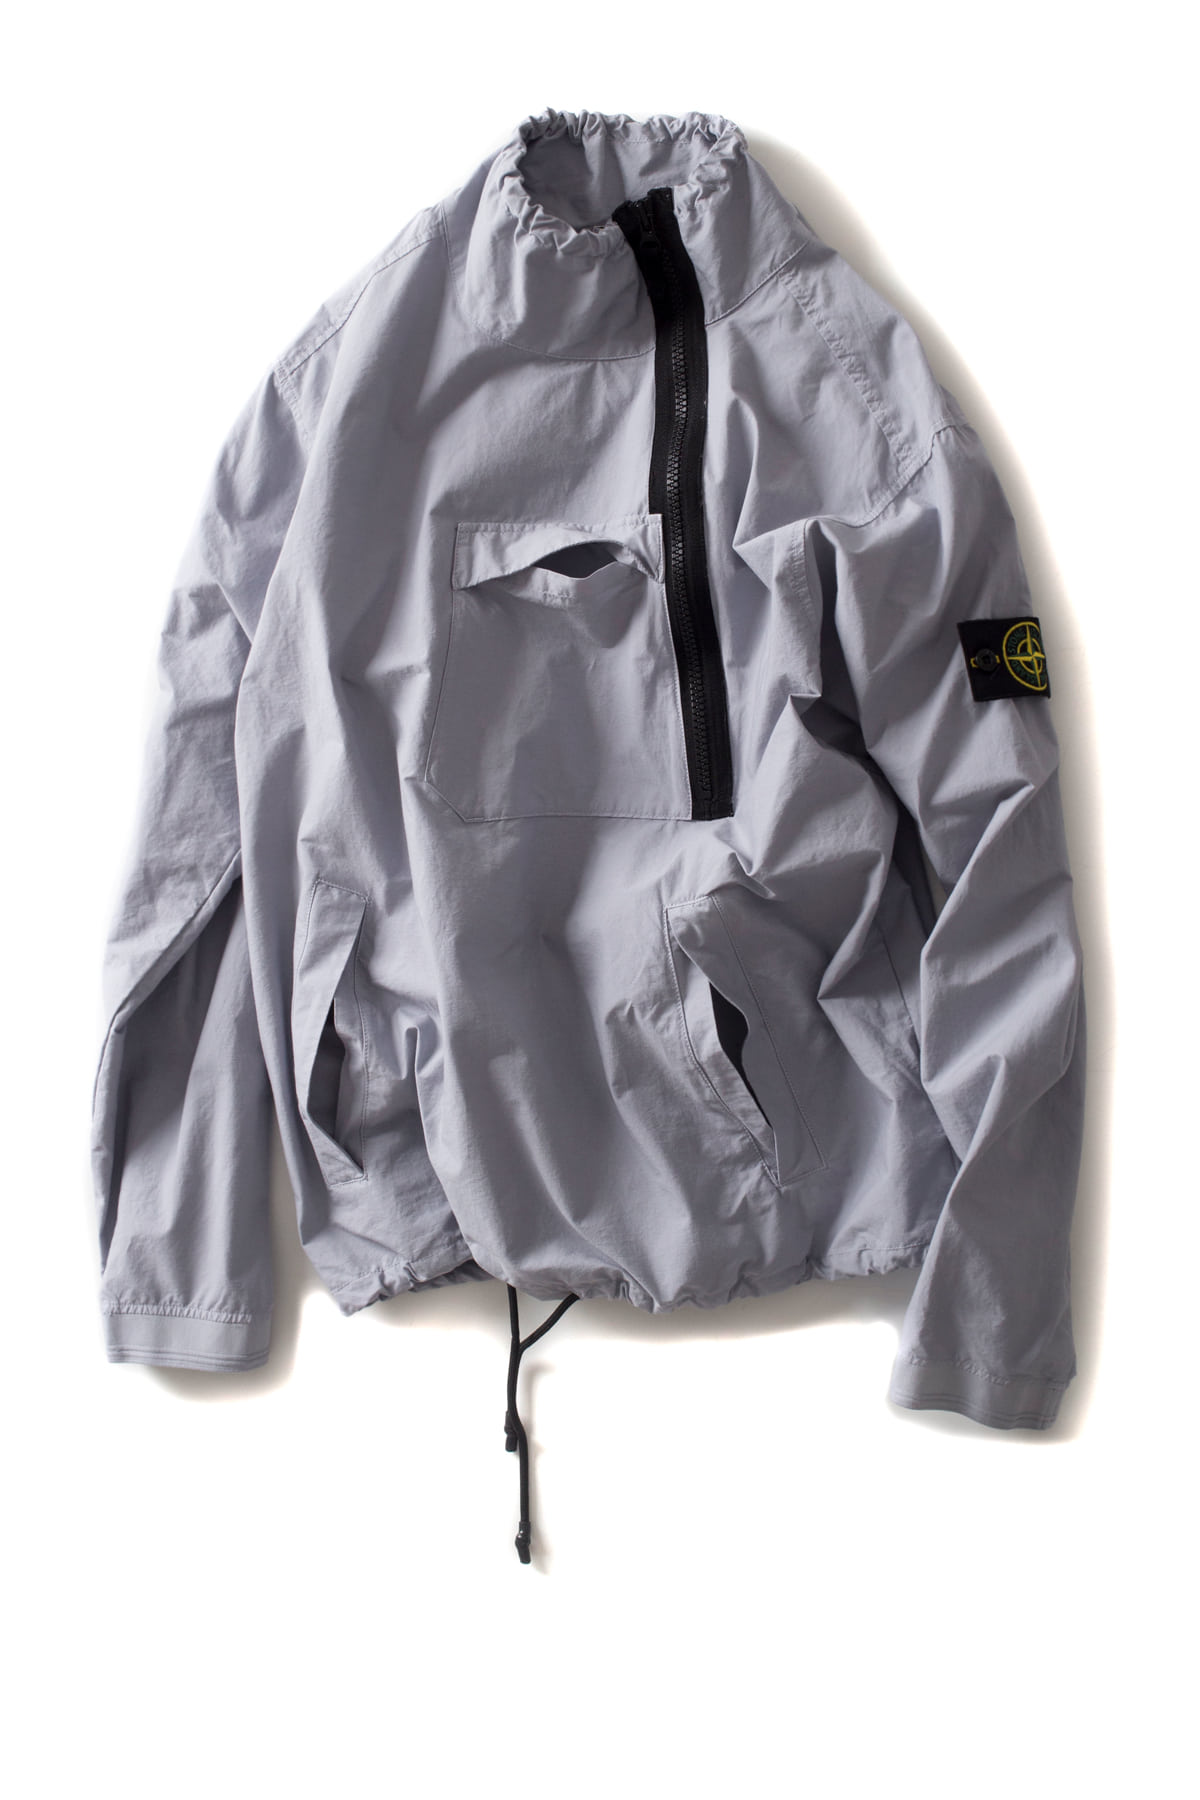 Stone Island : LIGHT COTTON NYLON TWILL (Lavender)